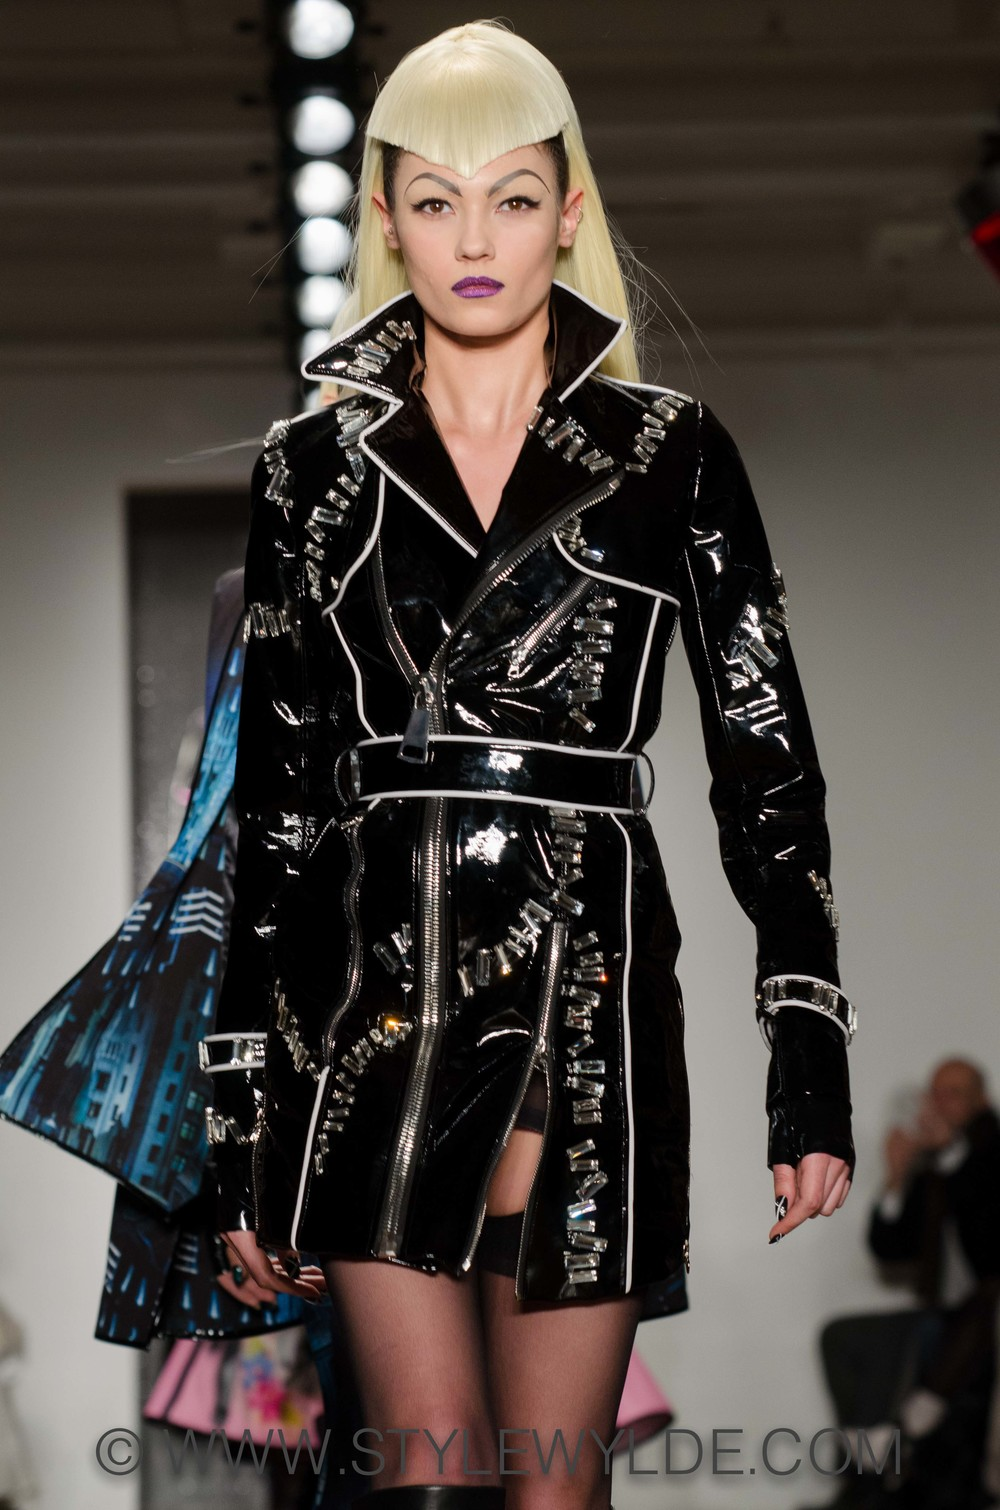 Stylewylde_Blonds_FW2014_FOH_CA (15 of 16).jpg